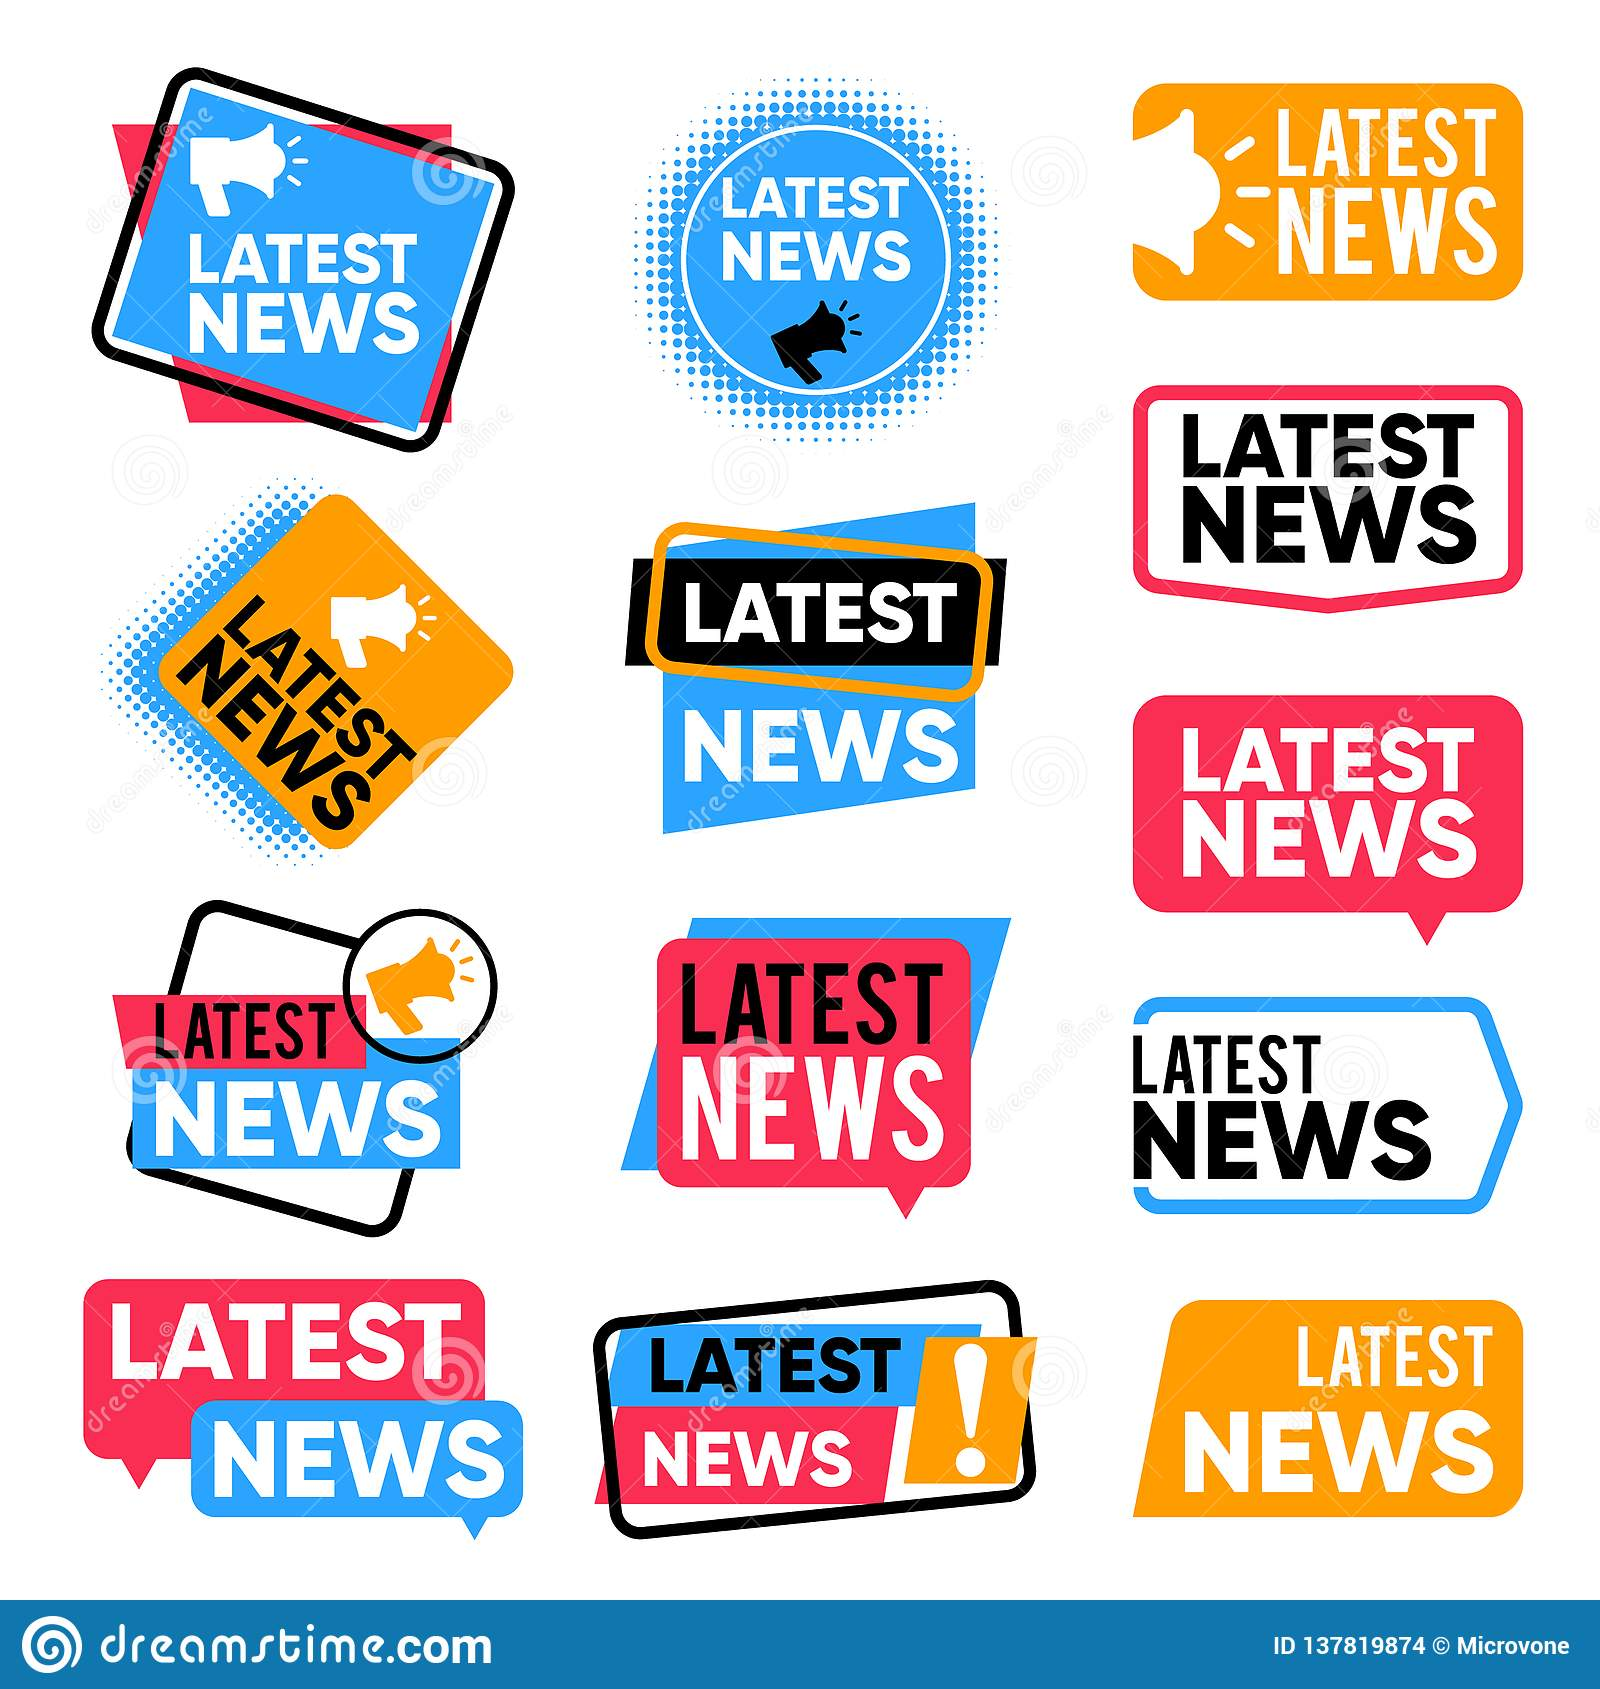 Newsletter Announcement Stock Illustrations – 6,291 Newsletter Announcement  Stock Illustrations, Vectors & Clipart - Dreamstime